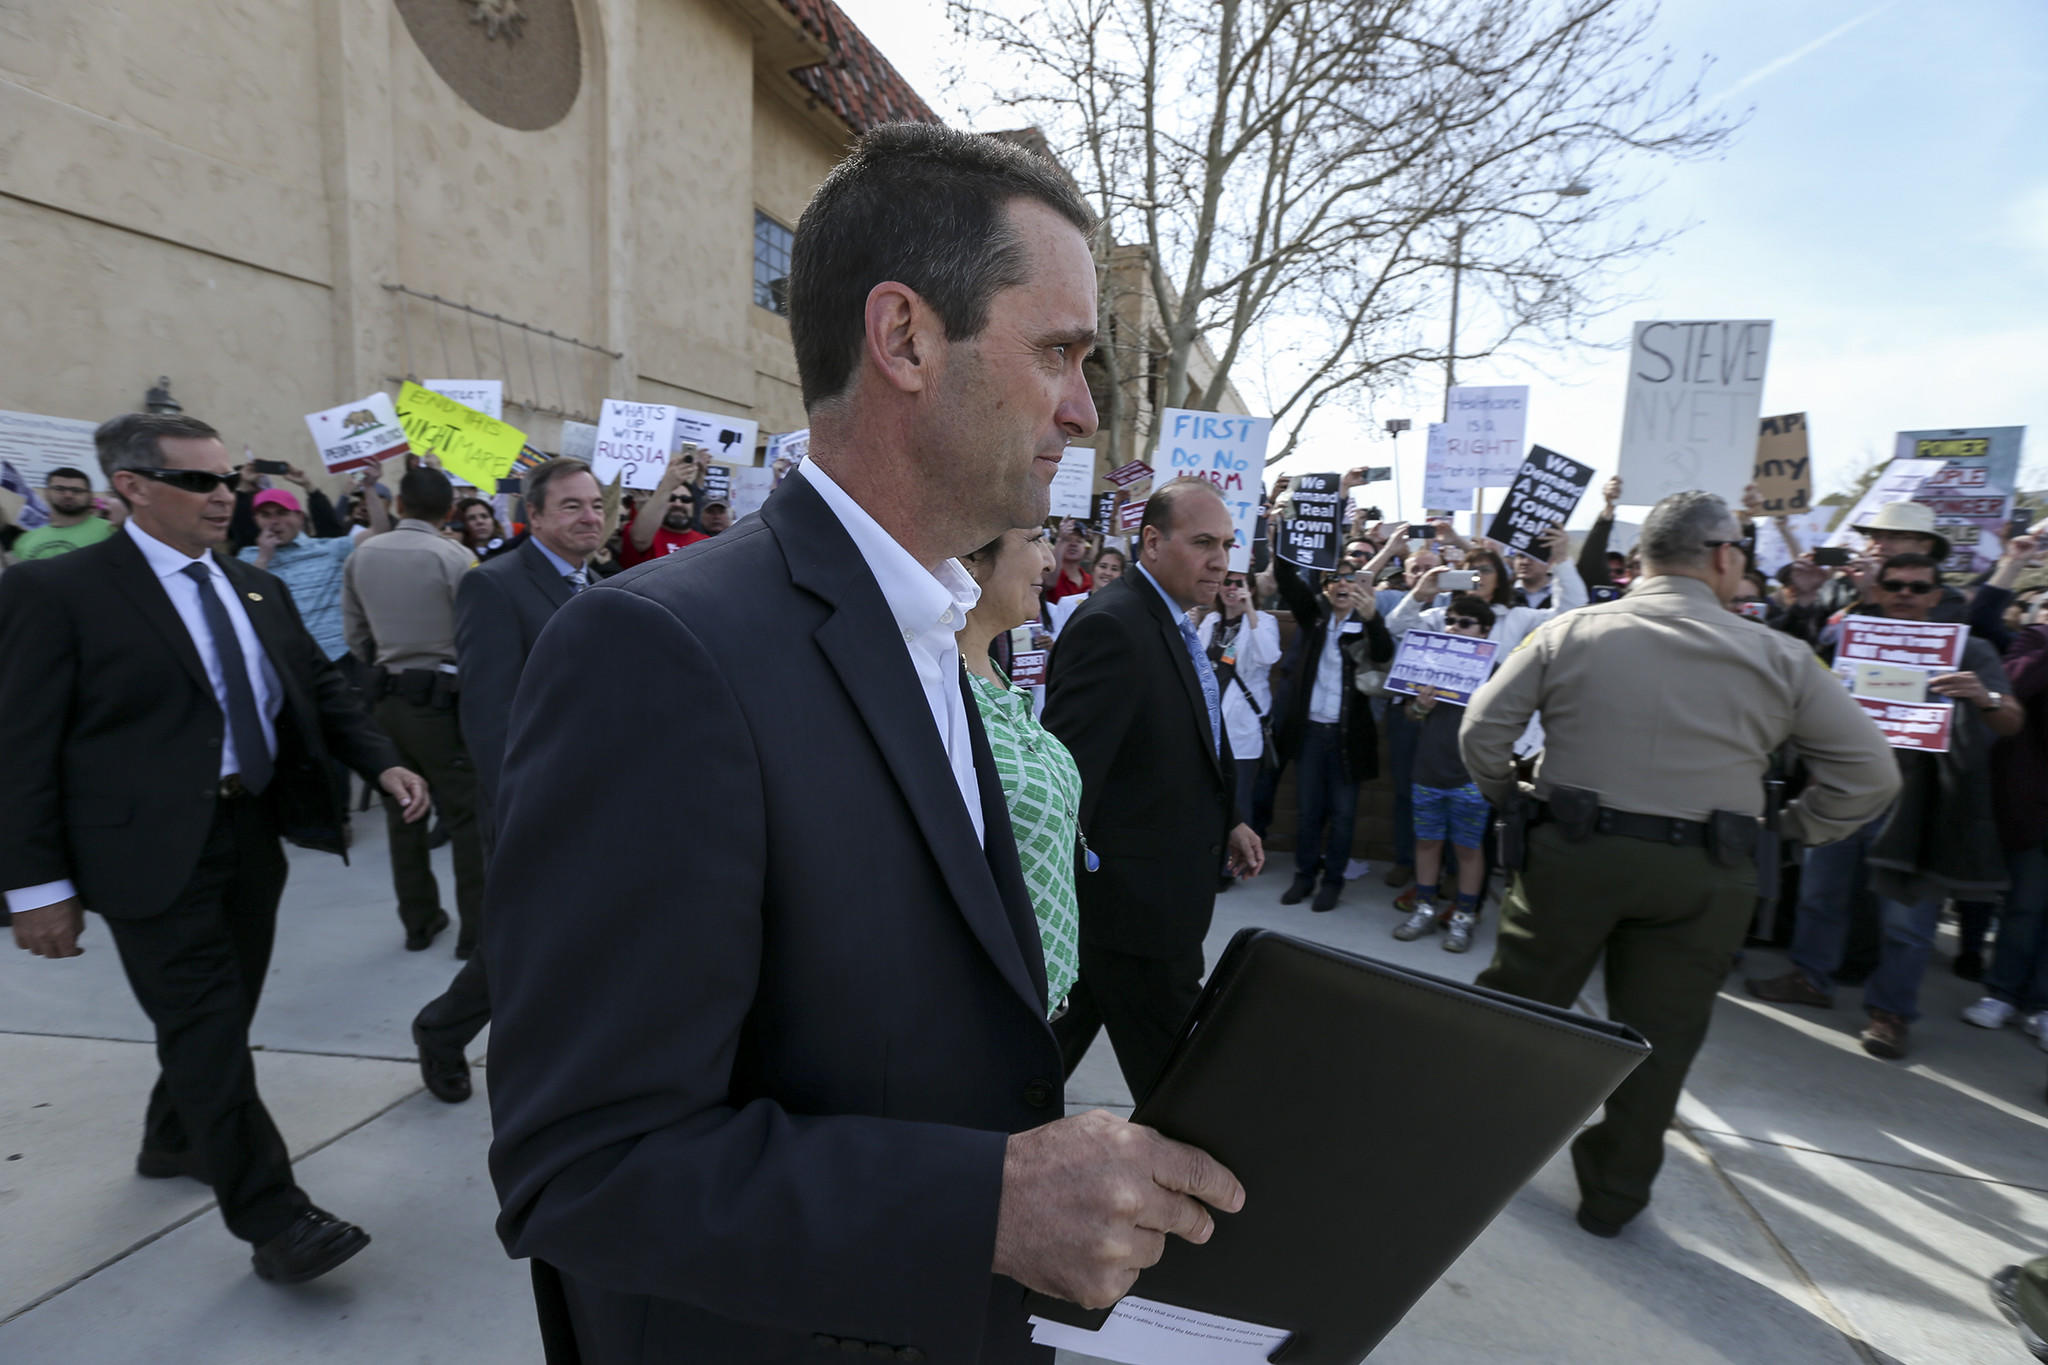 Rep. Steve Knight (R-Lancaster) walks past protesters as he leaves after holding a town hall meeting on Saturday in Palmdale. (Irfan Khan / Los Angeles Times)